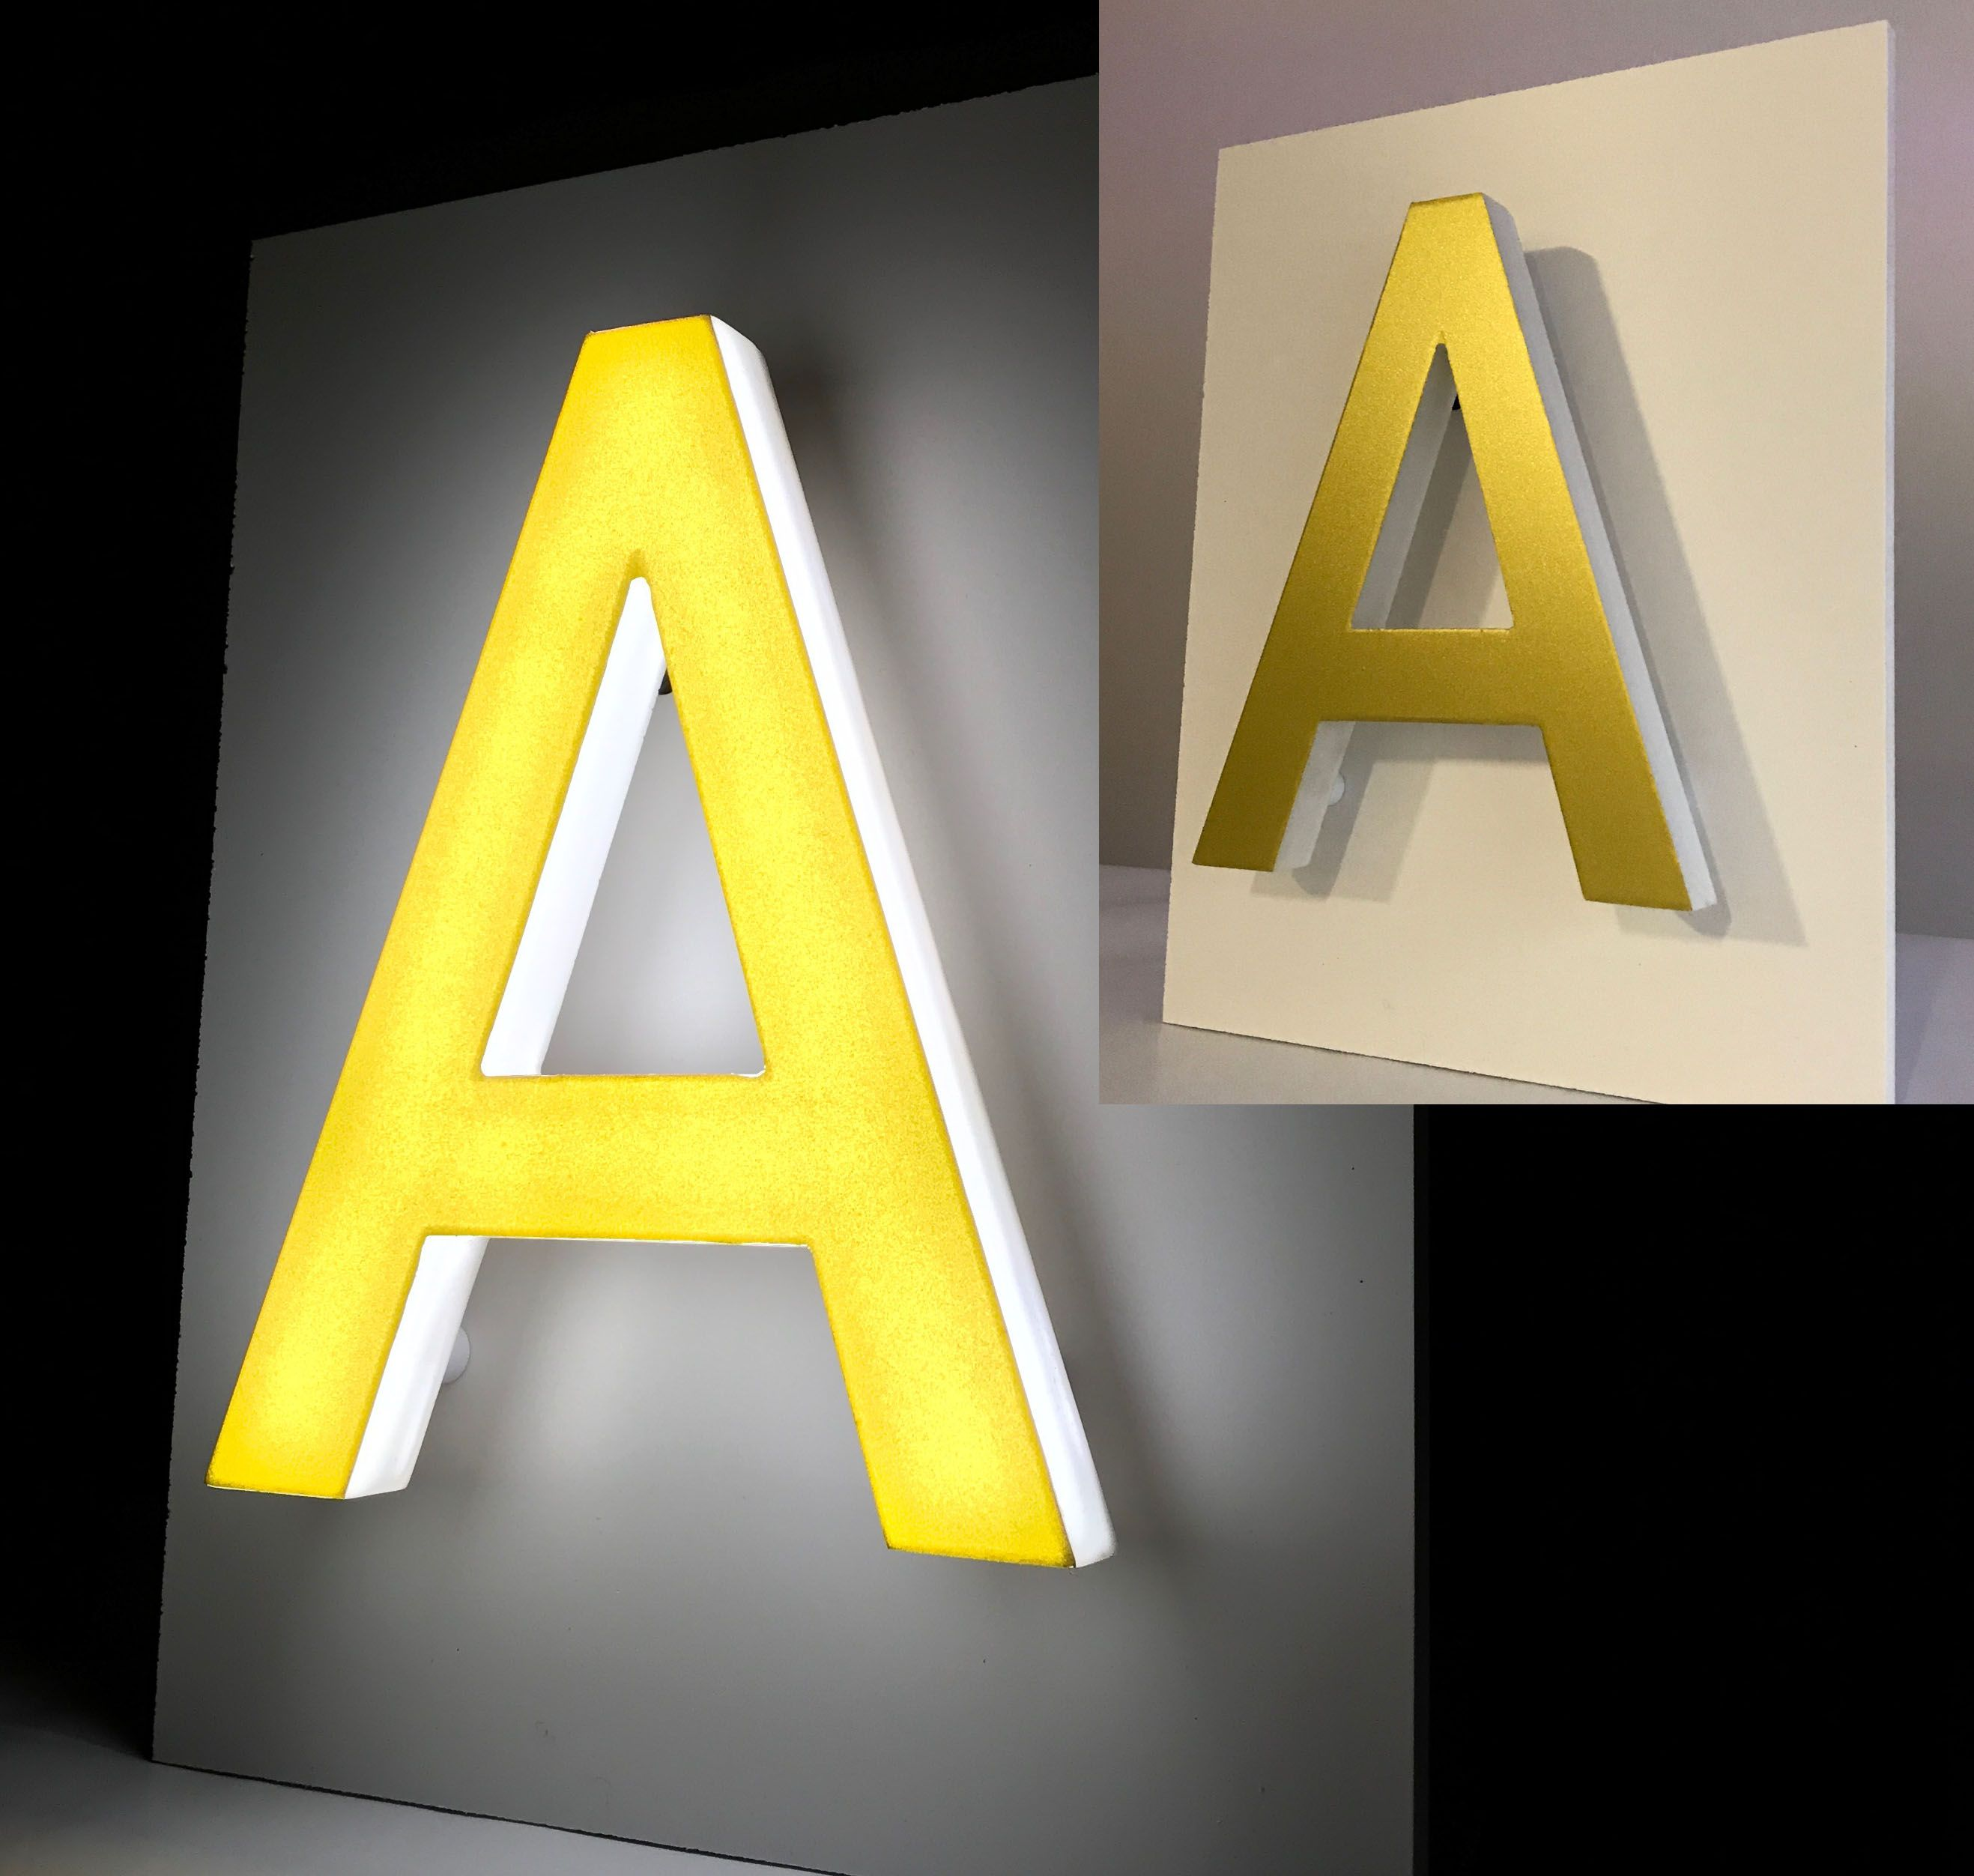 Gold Front Illuminated Led Sign For Outdoor Use Front And Sides Thin Illuminated Letter Led Light Design Gold Signage Light Letters